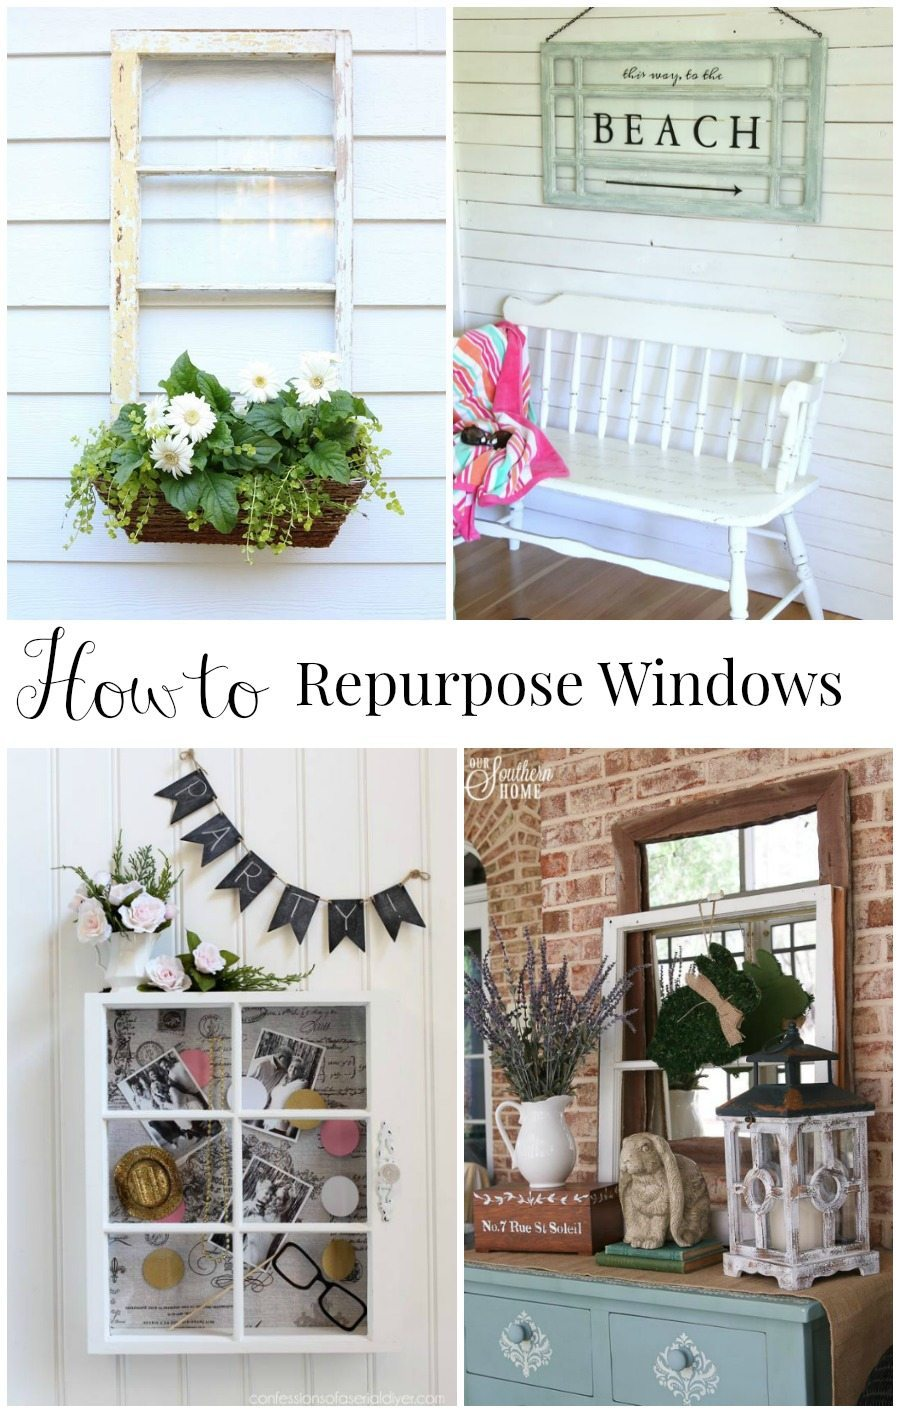 ow to repurpose old windows